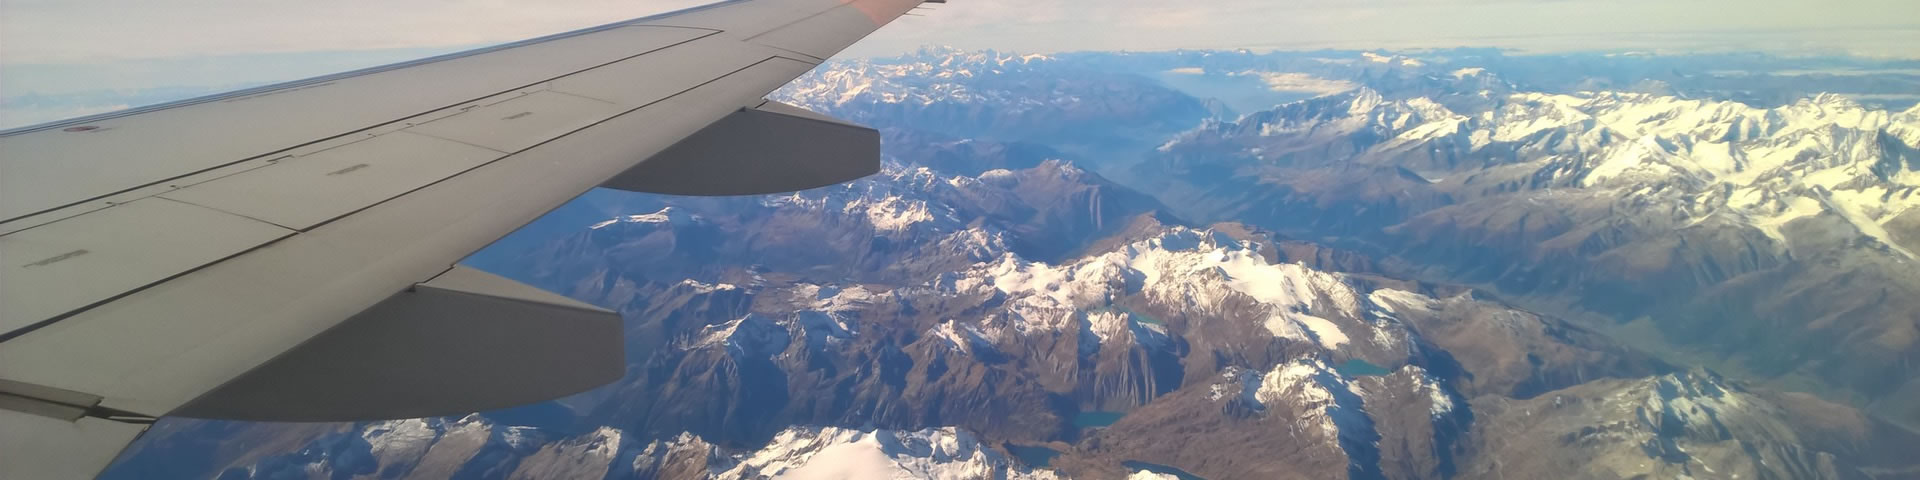 aeroplane travel to french alps